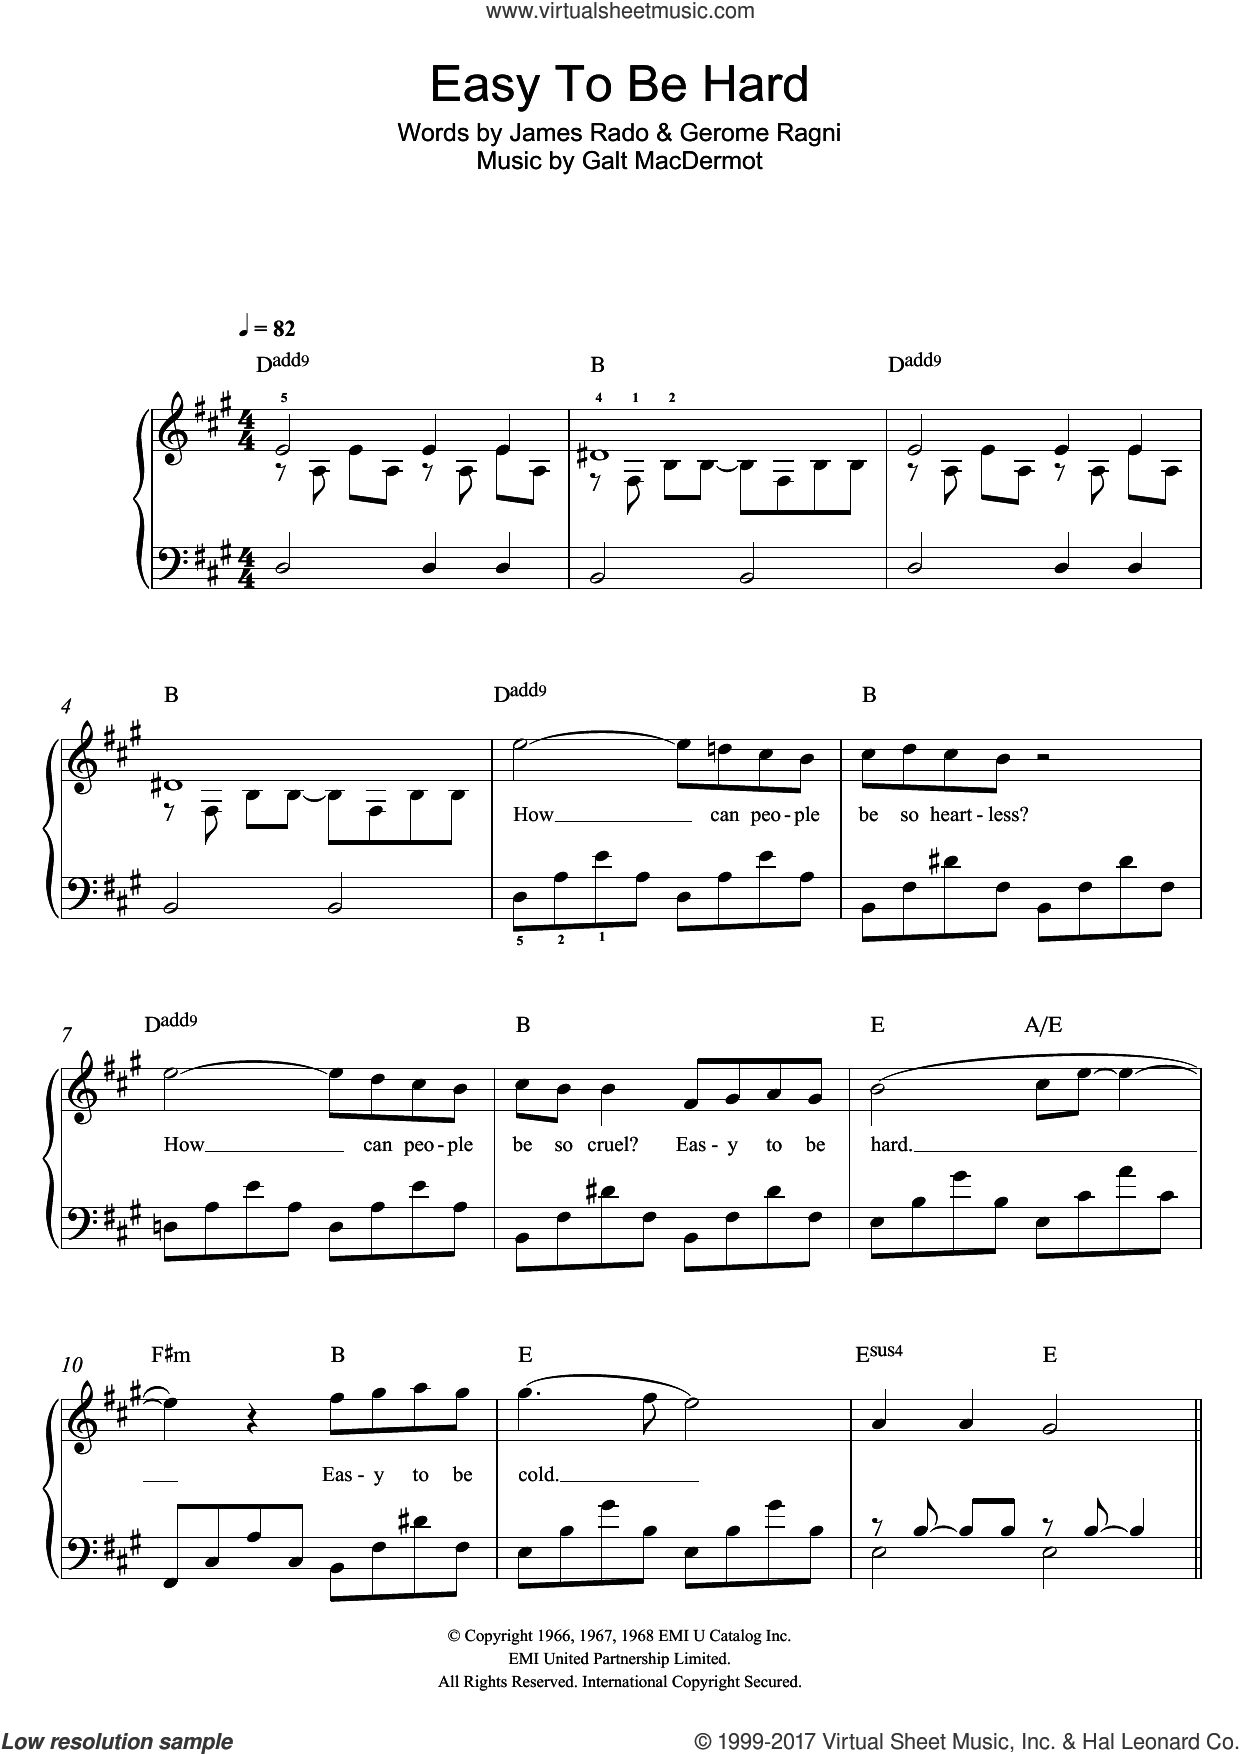 Easy To Be Hard (from 'Hair') sheet music for piano solo by Galt MacDermot, Gerome Ragni and James Rado, easy skill level